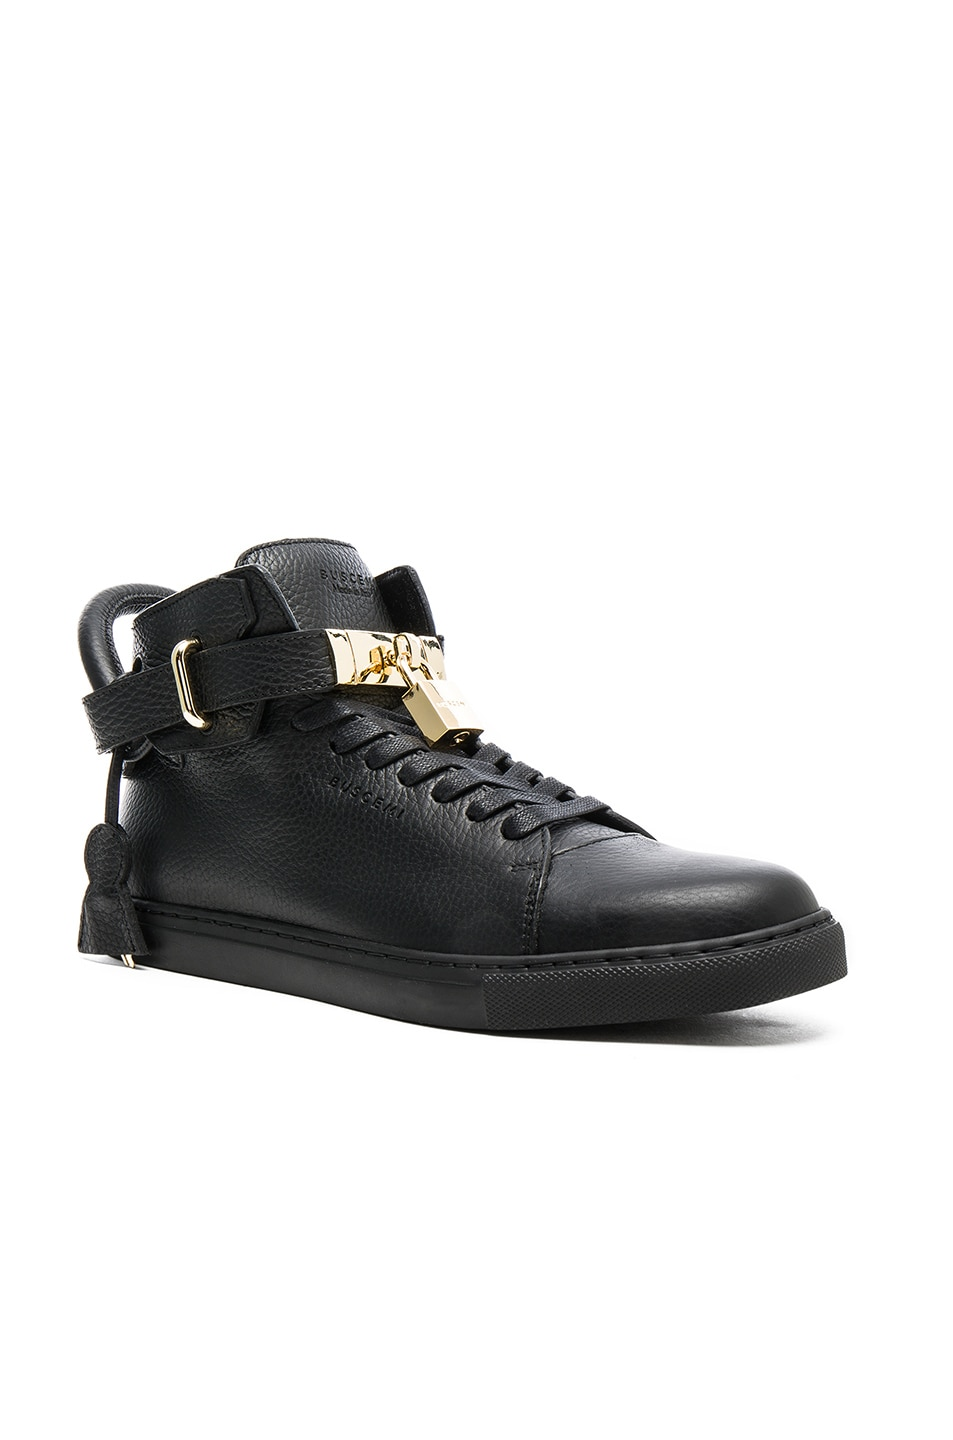 BUSCEMI Padlock Detail Hi-Tops in Black